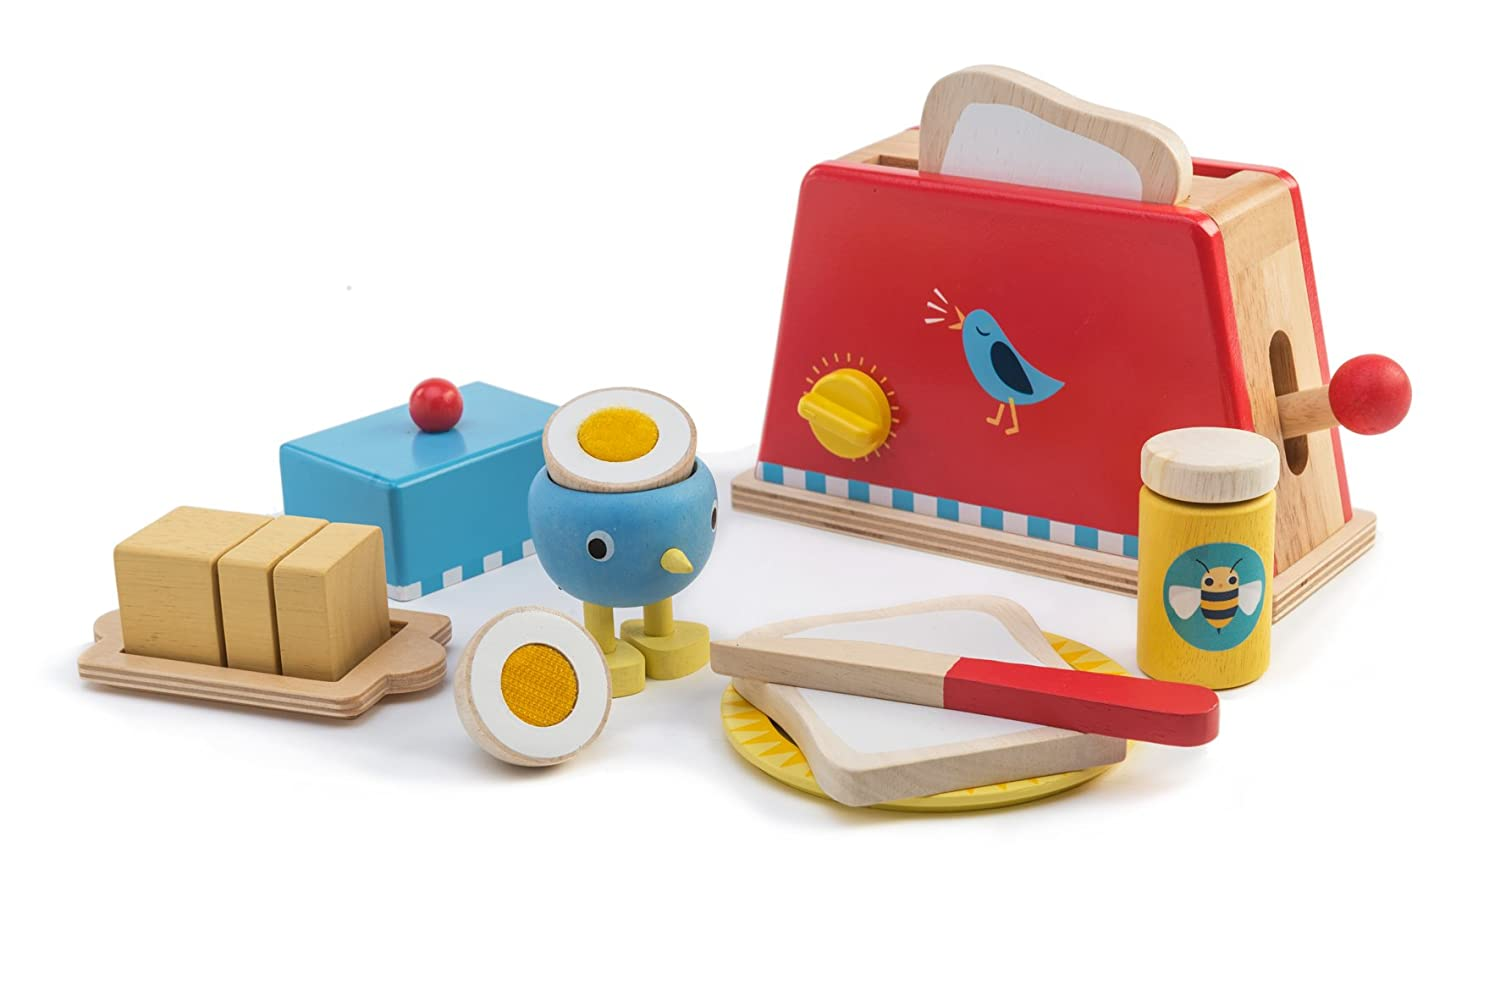 Tender Leaf Toys - Classic Wooden Pop Up Toaster and Egg Set - Pretend Food Play Toy Toaster with Bread, Butter, and Eggs - Encourages Imaginative Play, Roleplay, and Communication Skills - 3 Year +